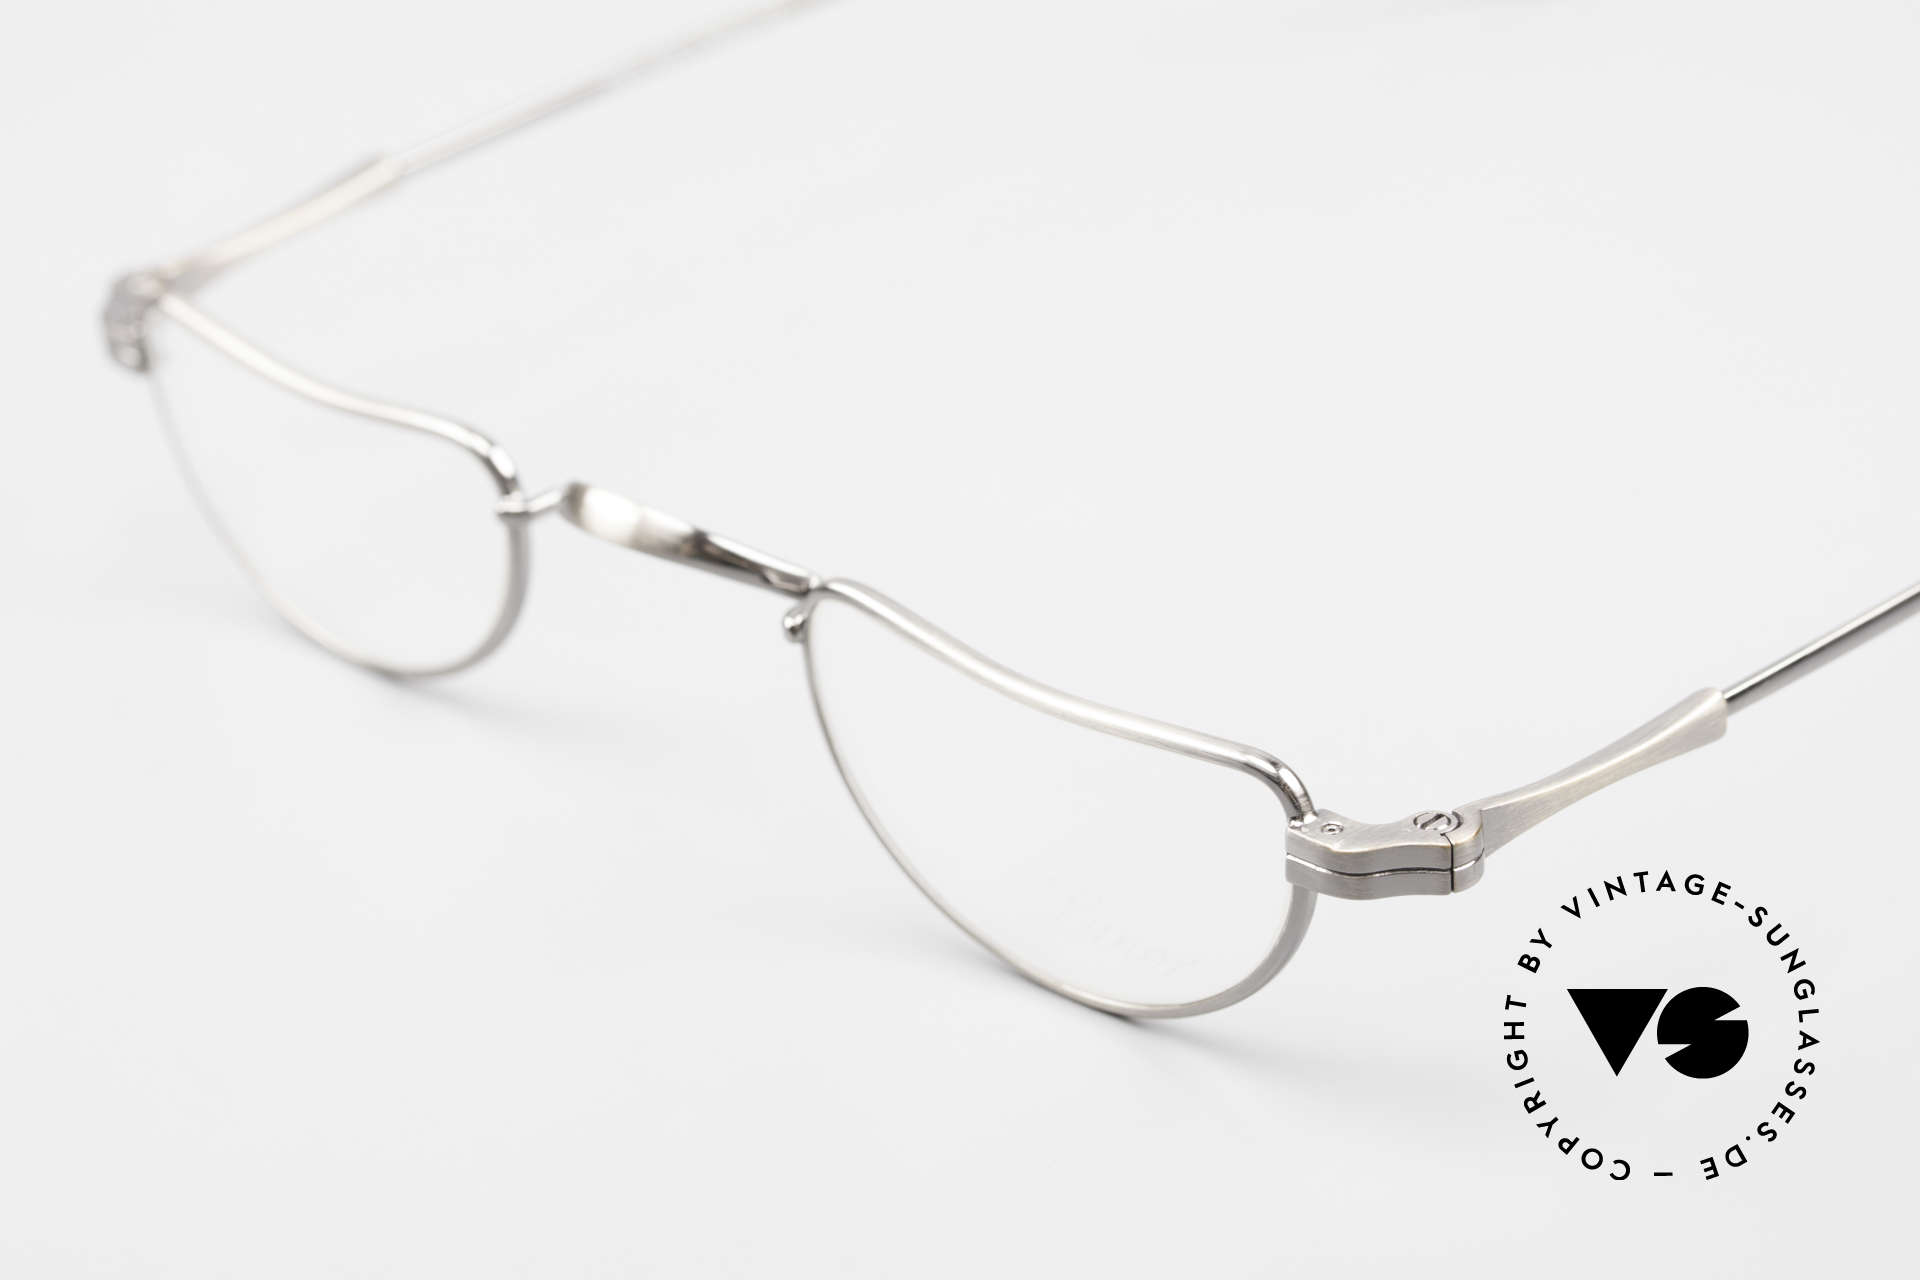 Lunor II 07 Classic Reading Eyeglasses, antique silver frame (coated with a potection lacquer), Made for Men and Women